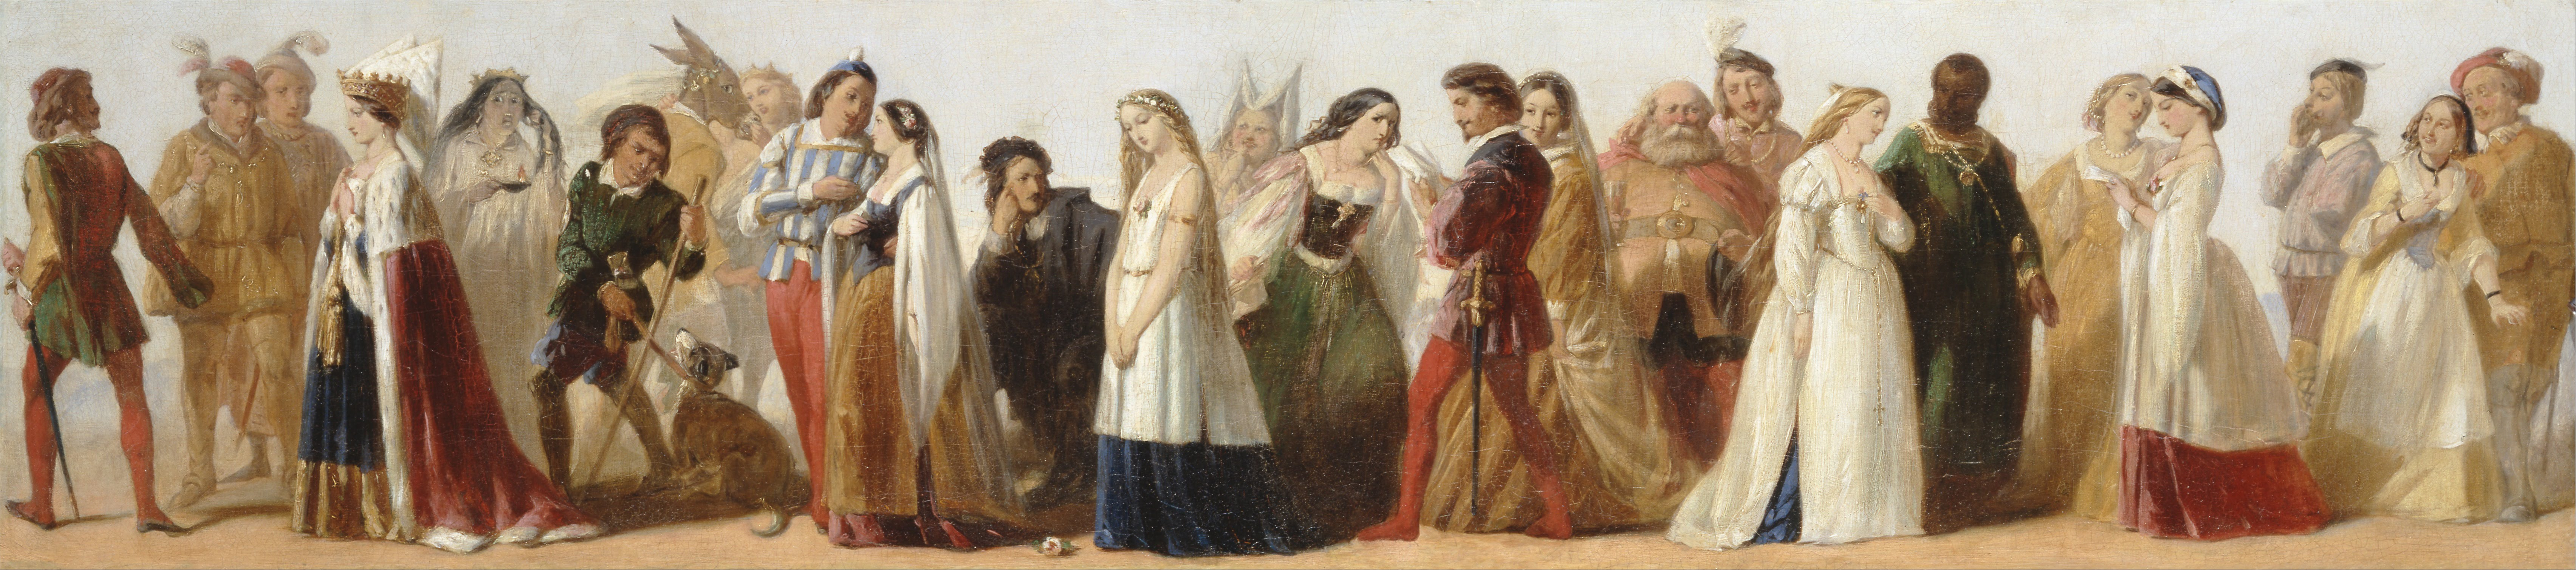 Procession of Characters from Shakespeare's Plays by an unknown 19th-century artist (manner of Thomas Stothard), circa 1840.